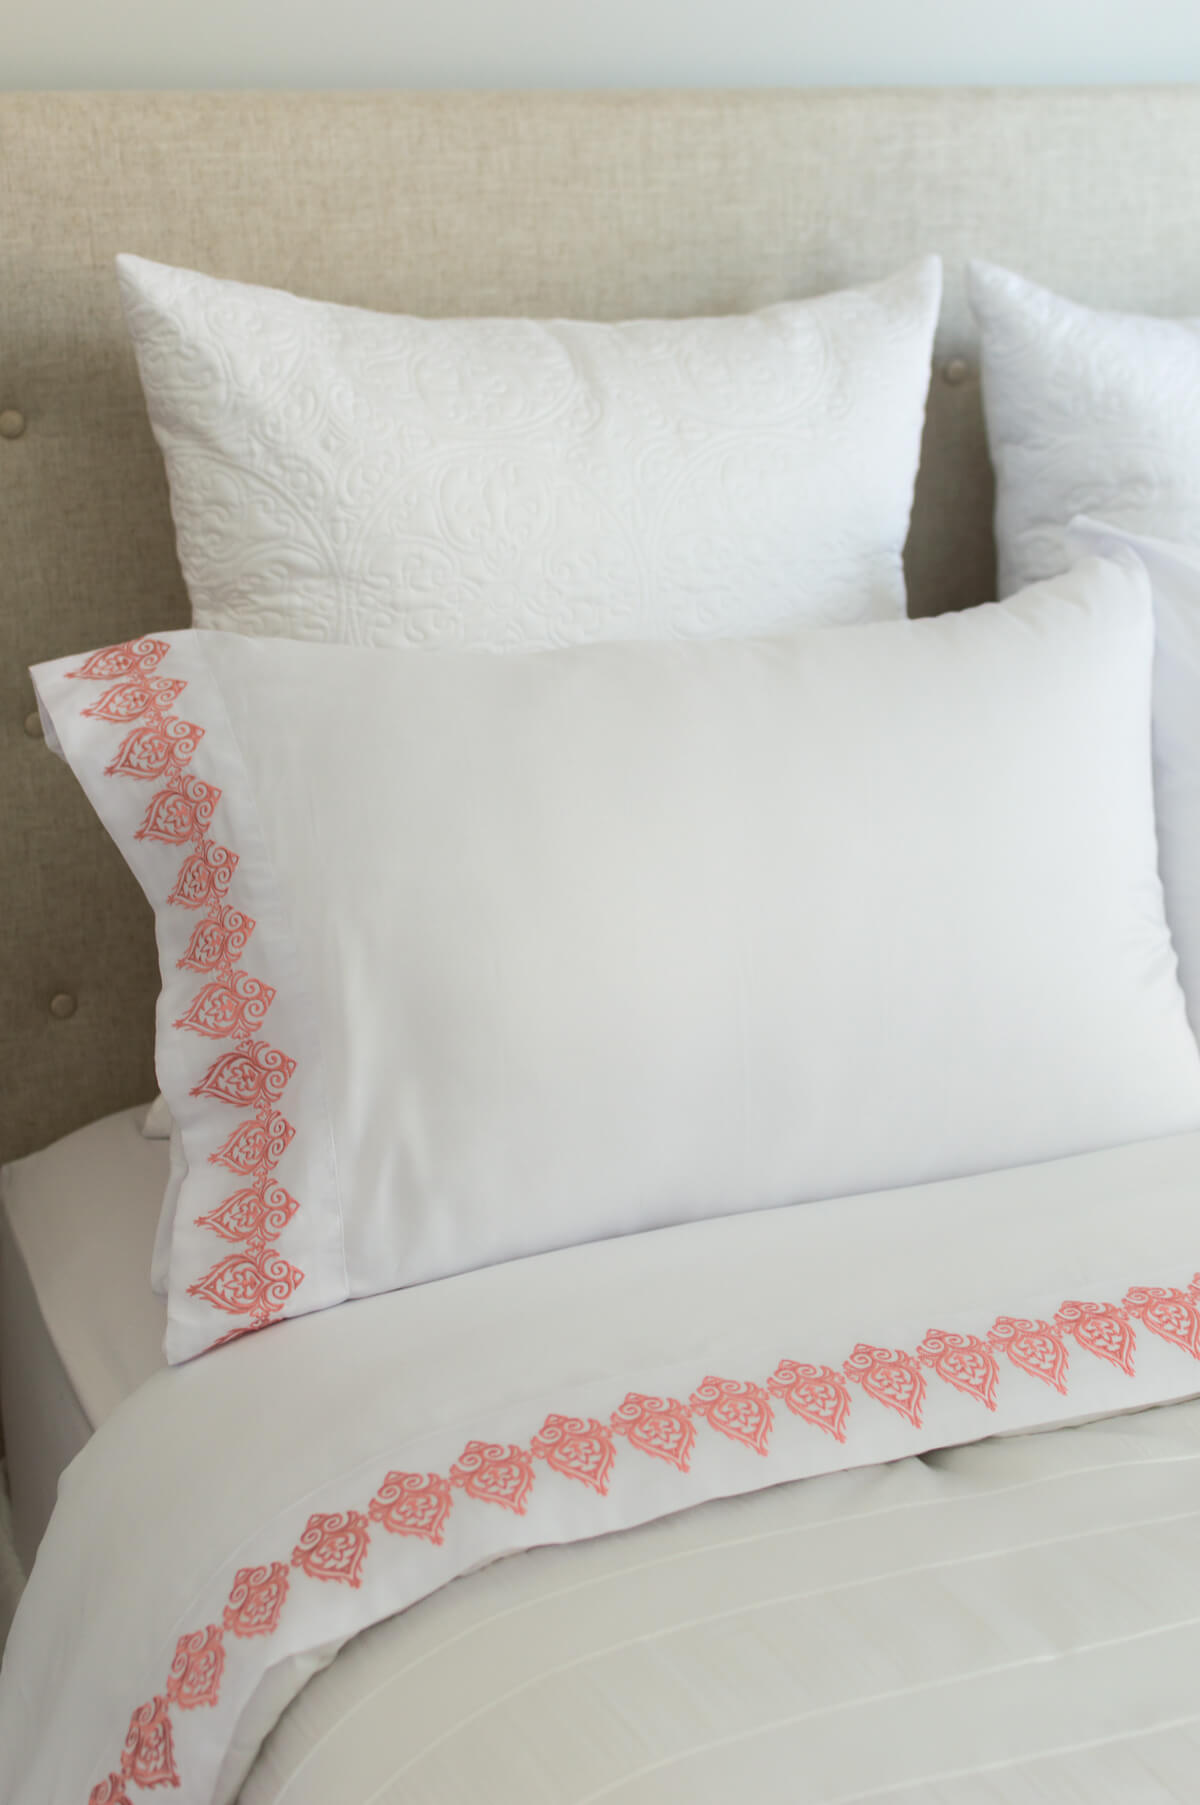 Bed Linens | White Bedding | Neutral Bedding | Embroidery | thehomeicreate.com